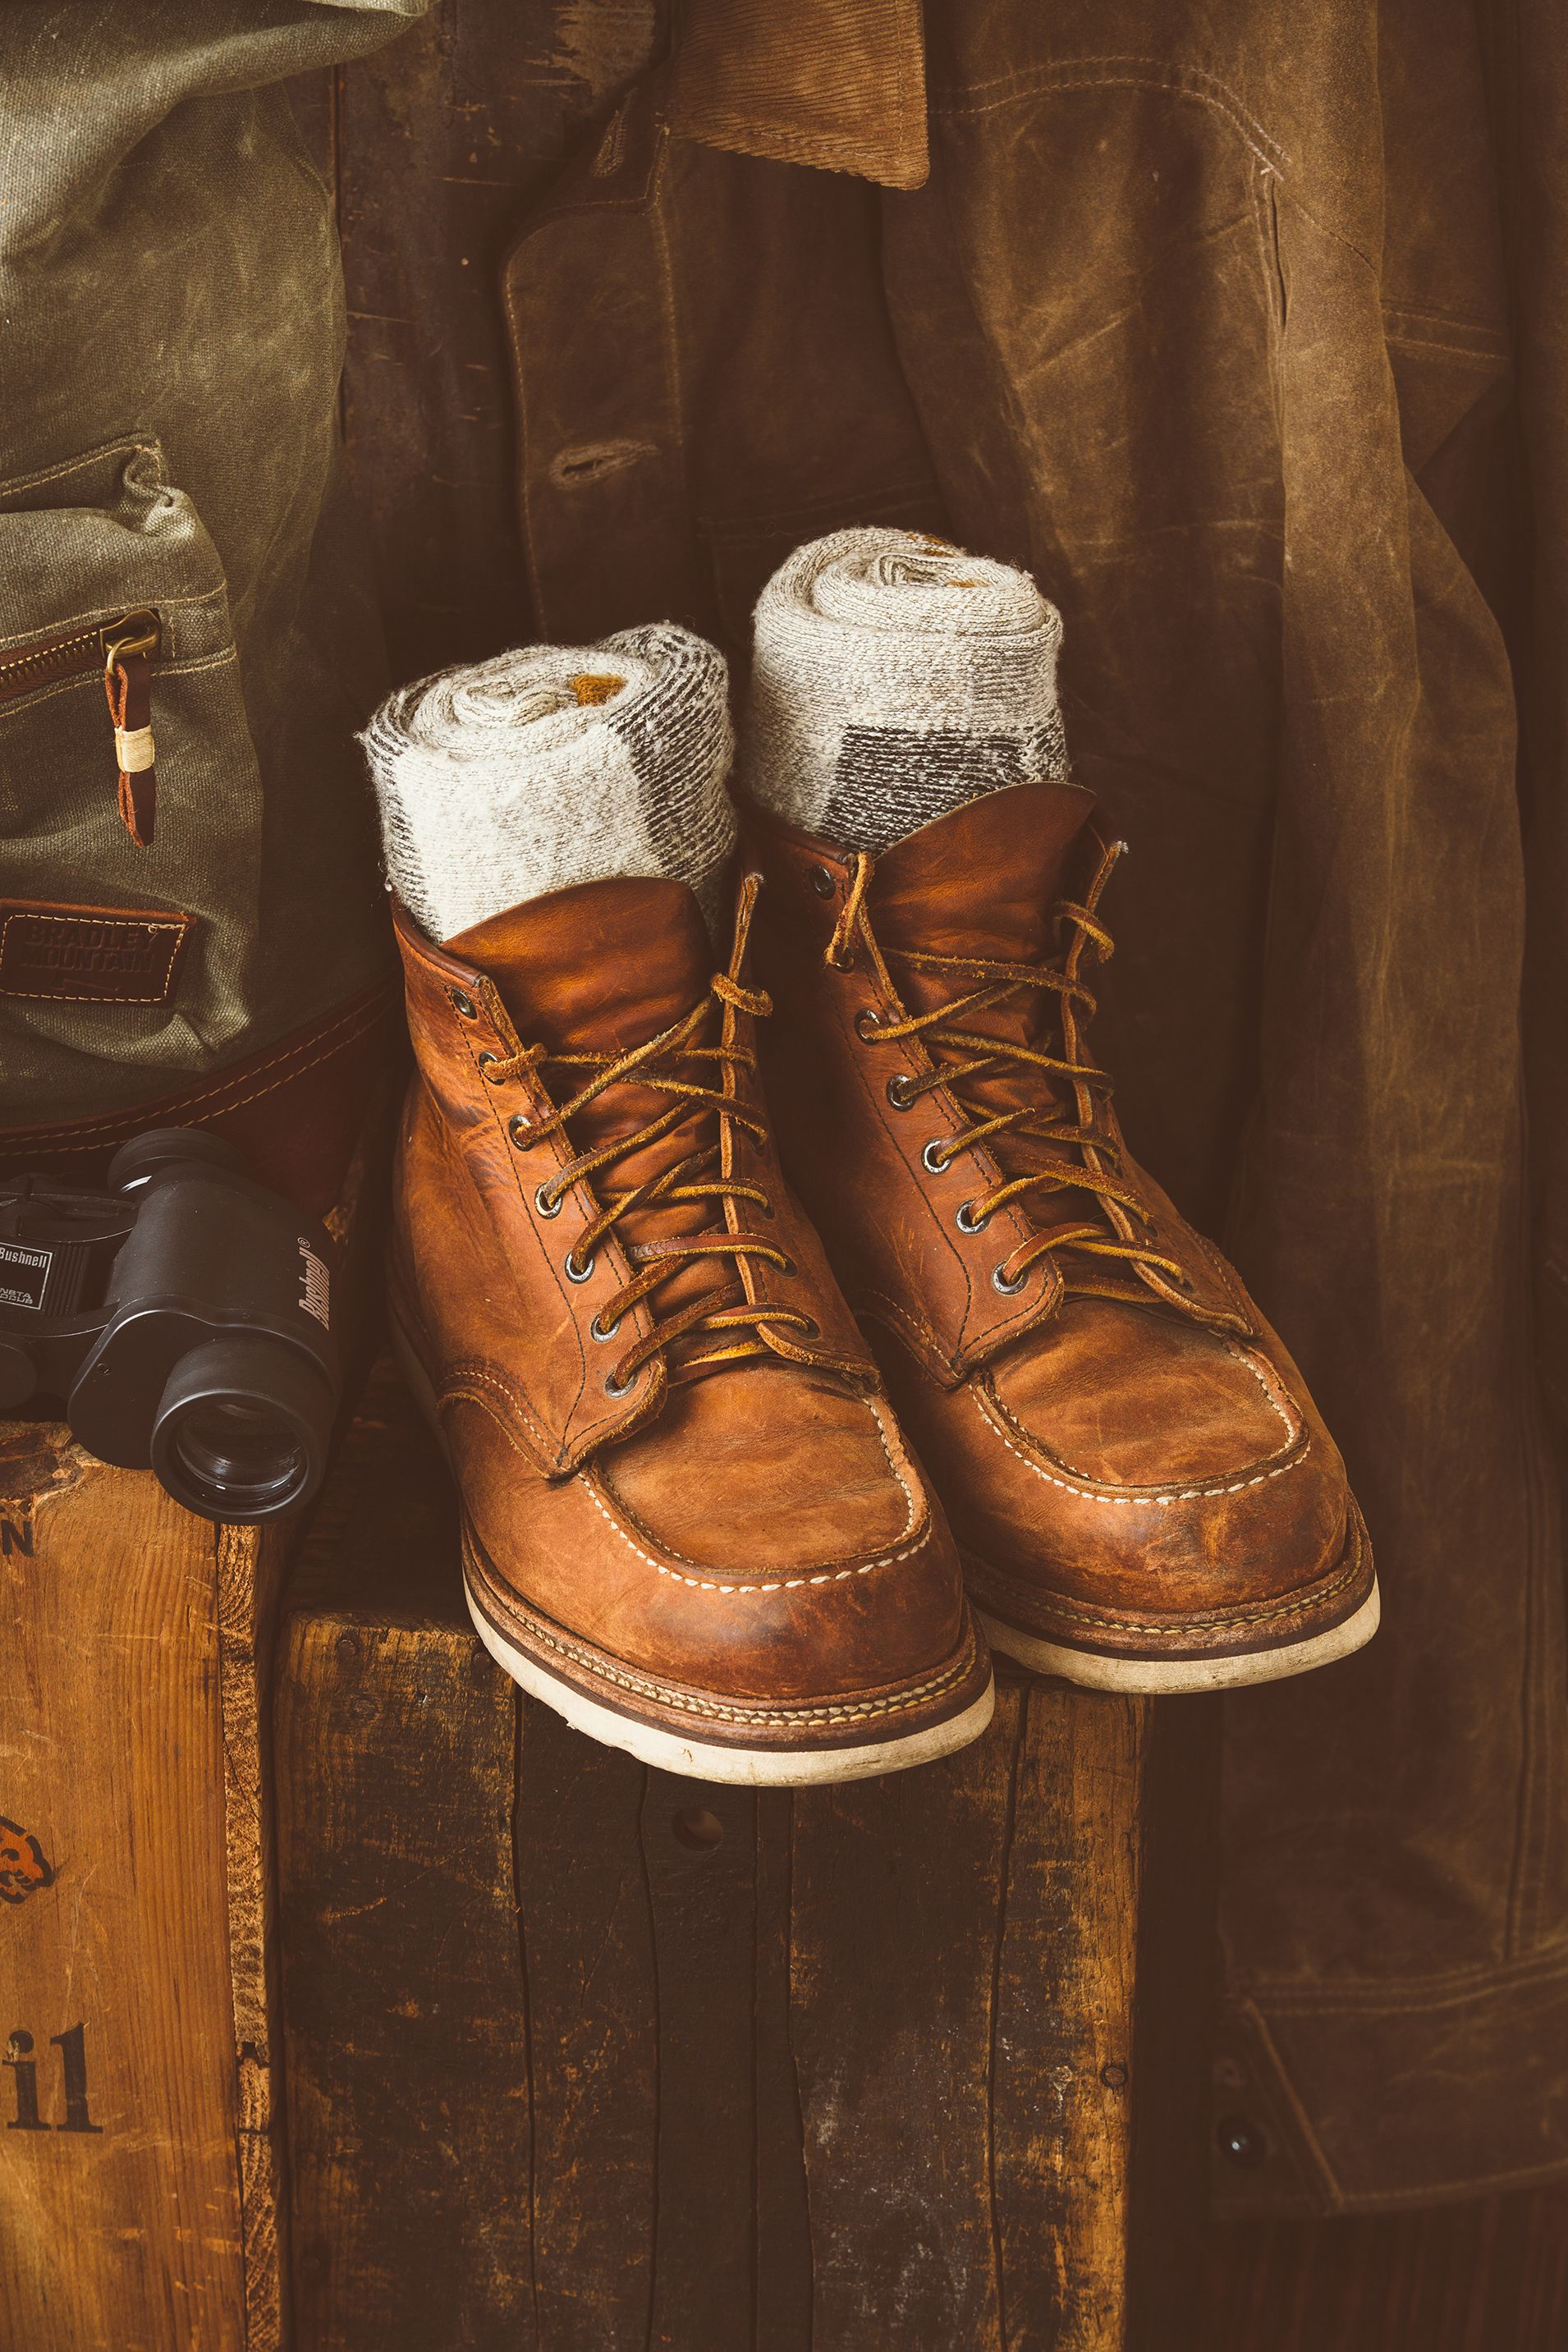 016fd3c61b2 My red wing moc toe boots. Well worn. Patina. Instagram ...